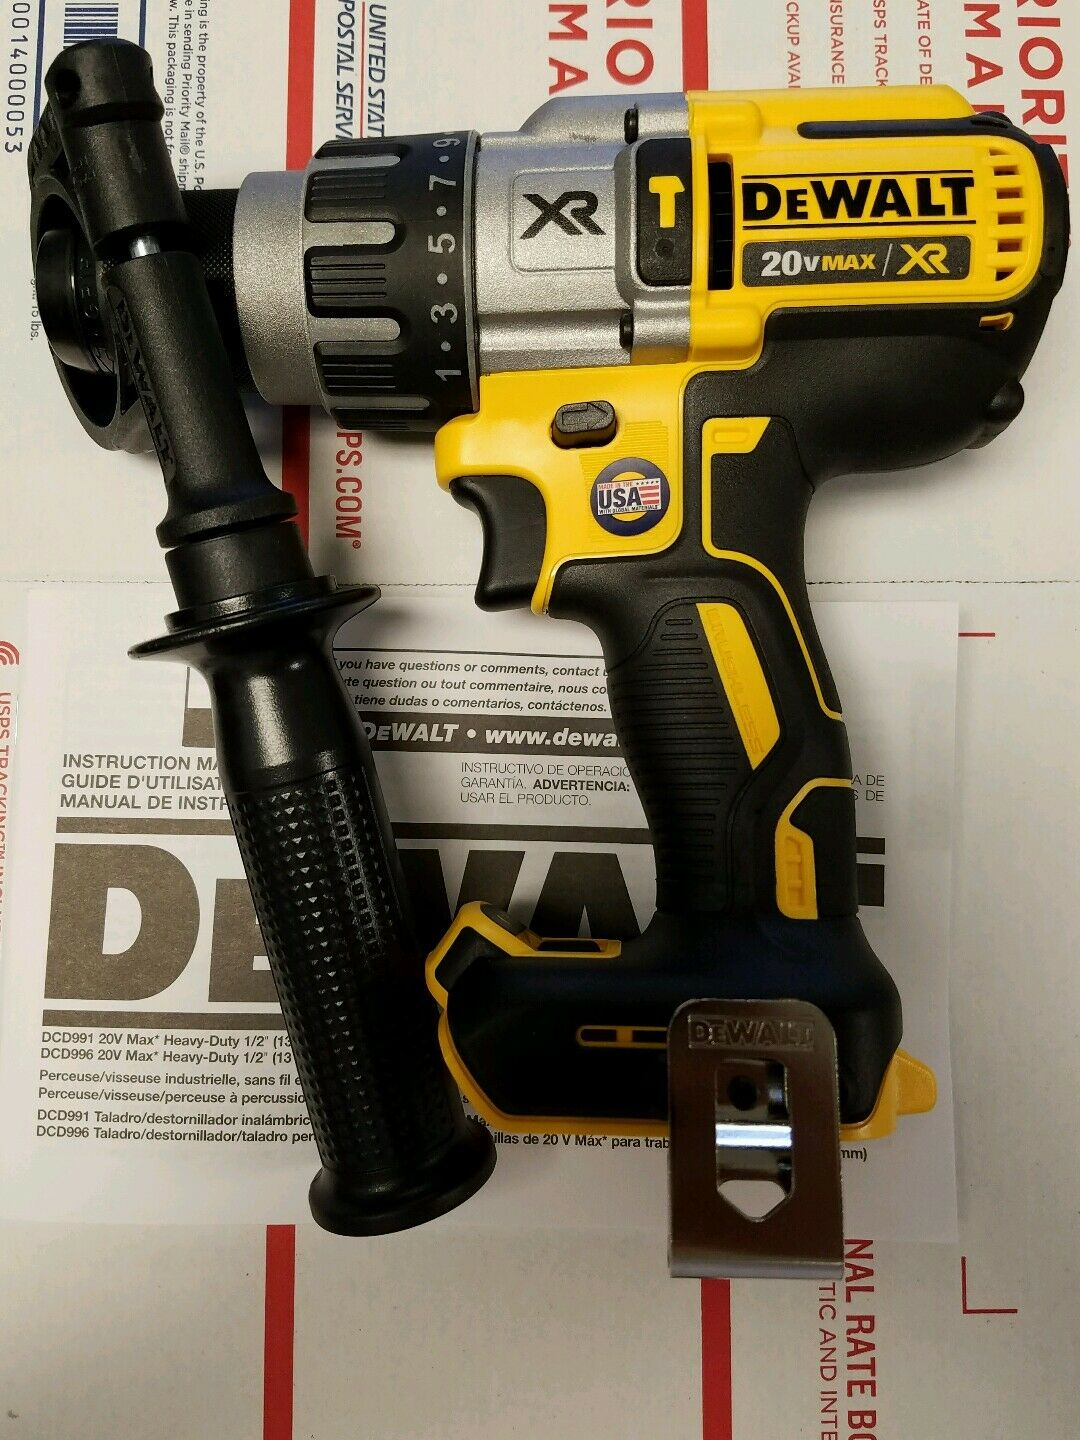 DEWALT DCD996B 20V Brushless Lithium Ion 1 2  Hammer Drill NEW Replaces DCD995